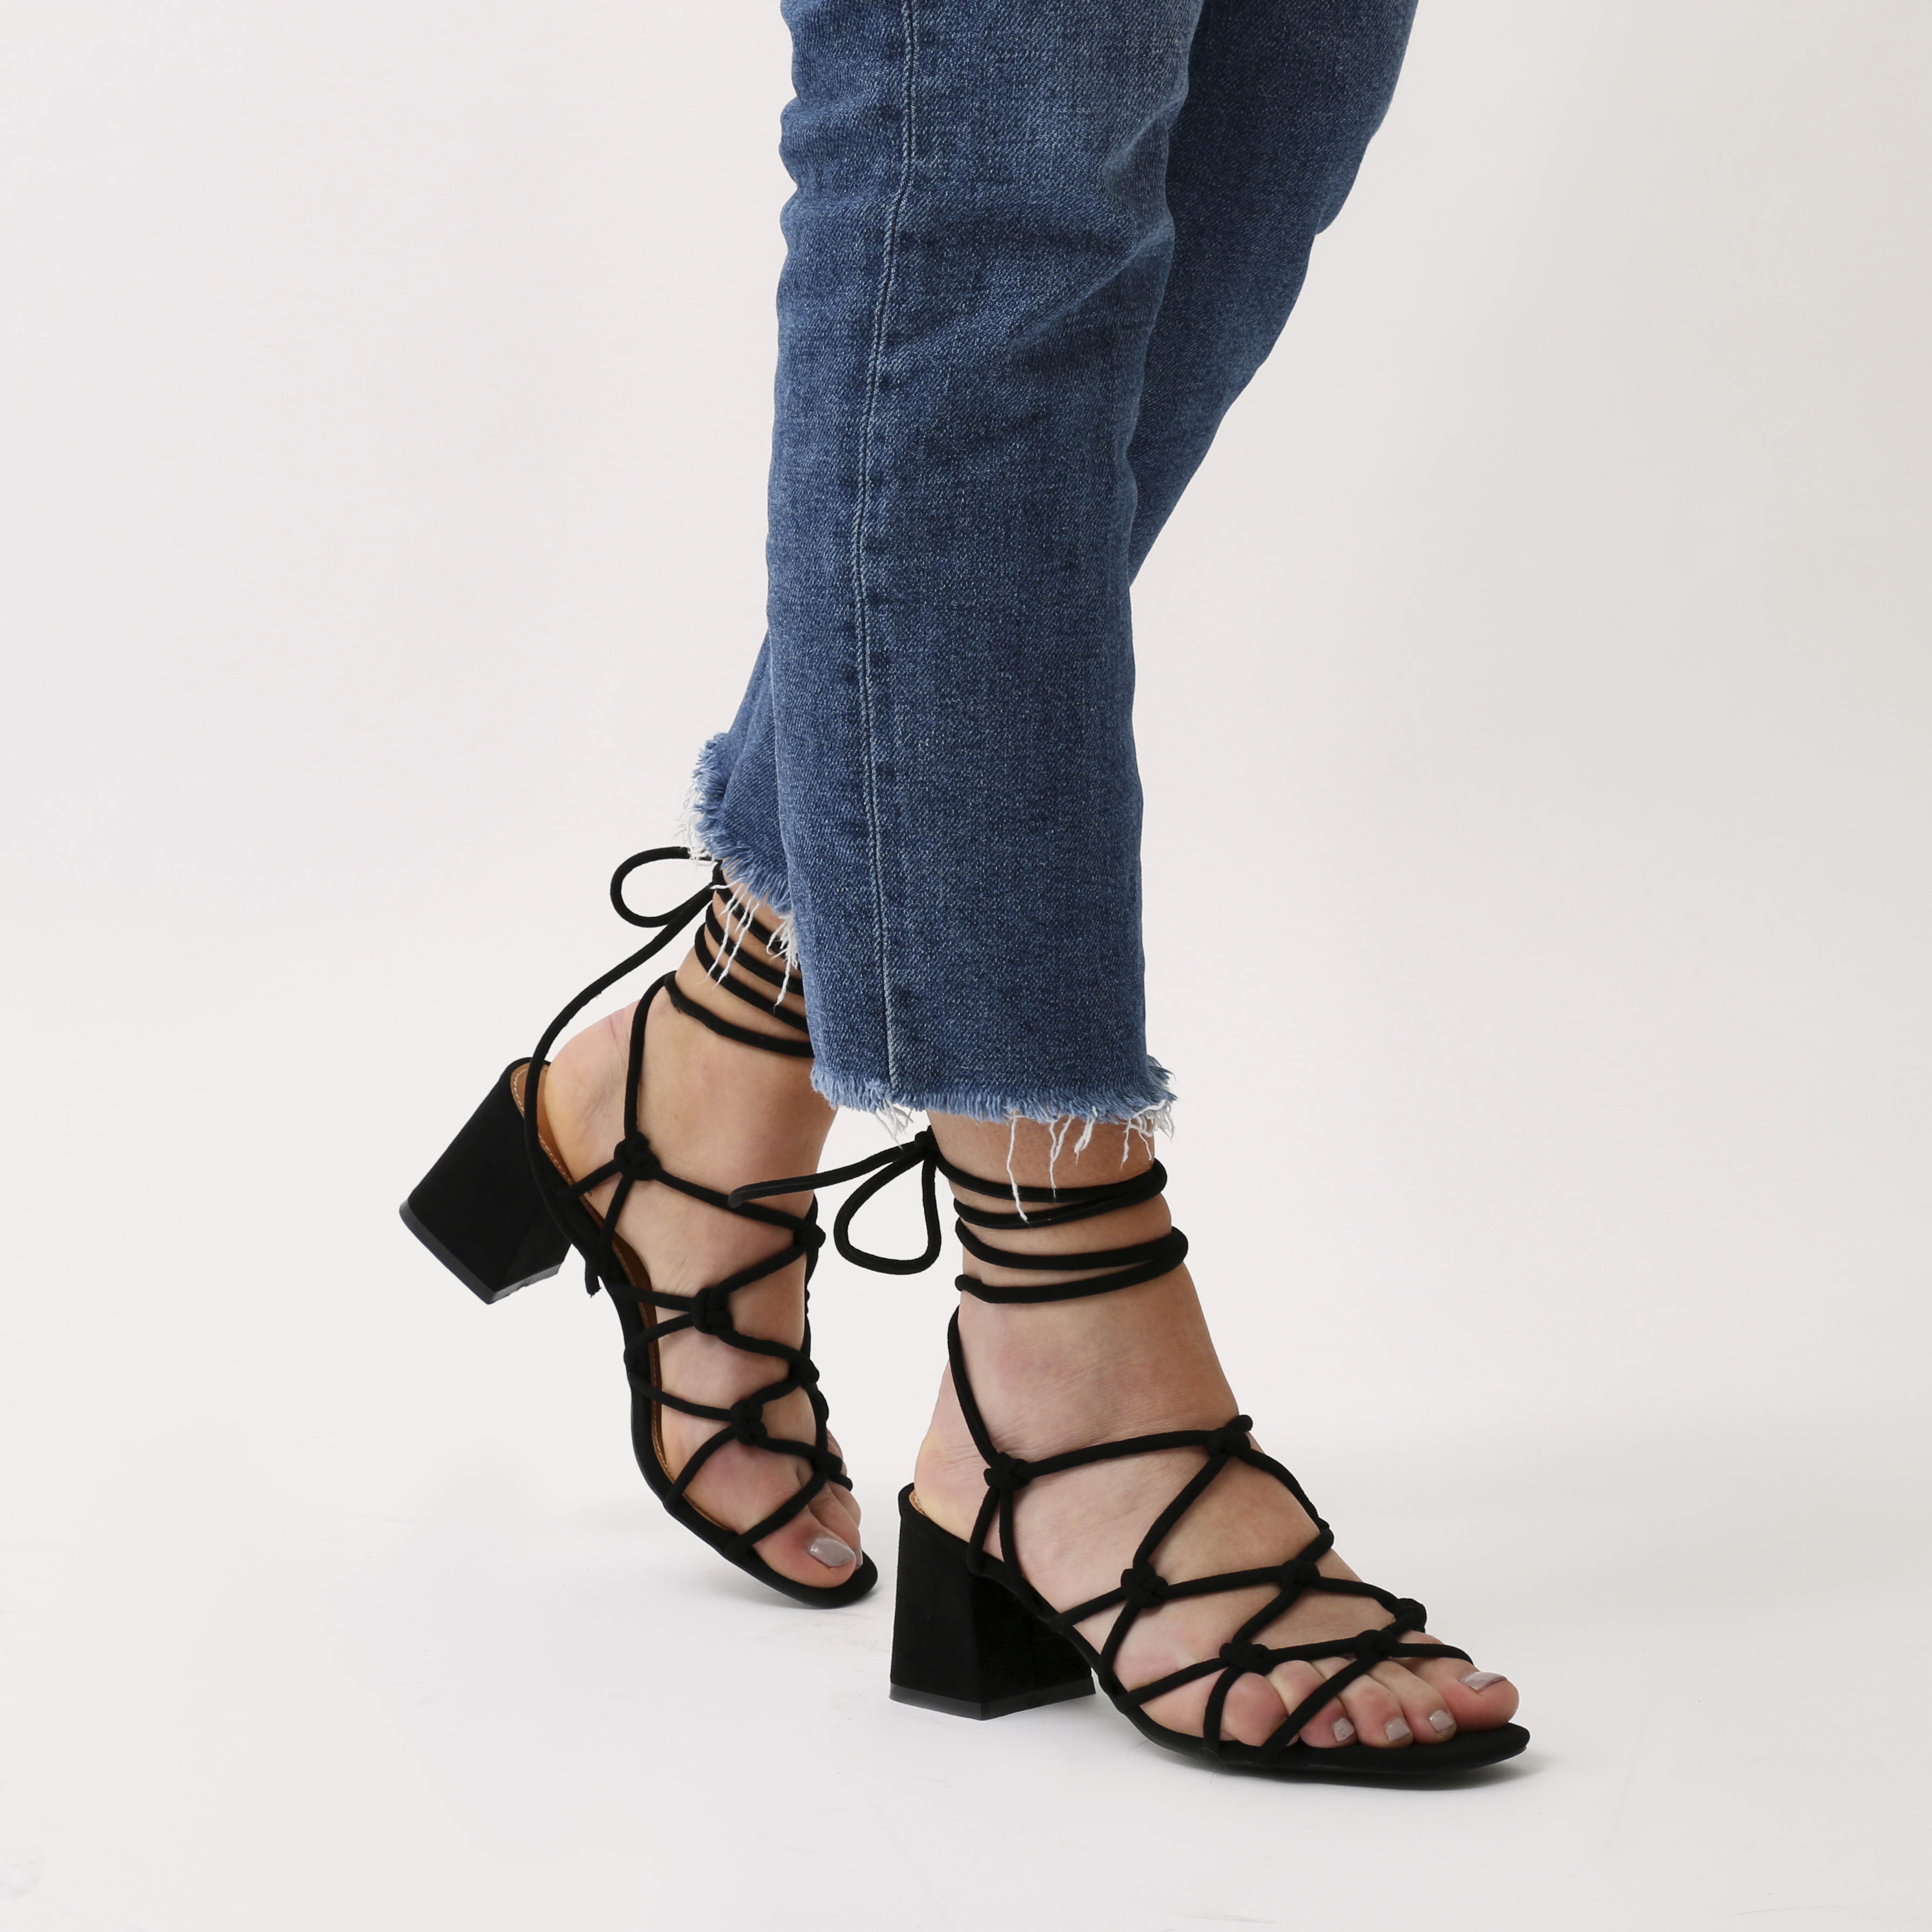 81b63d507a1 Freya Knotted Strappy Block Heeled Sandals in Black Faux Suede